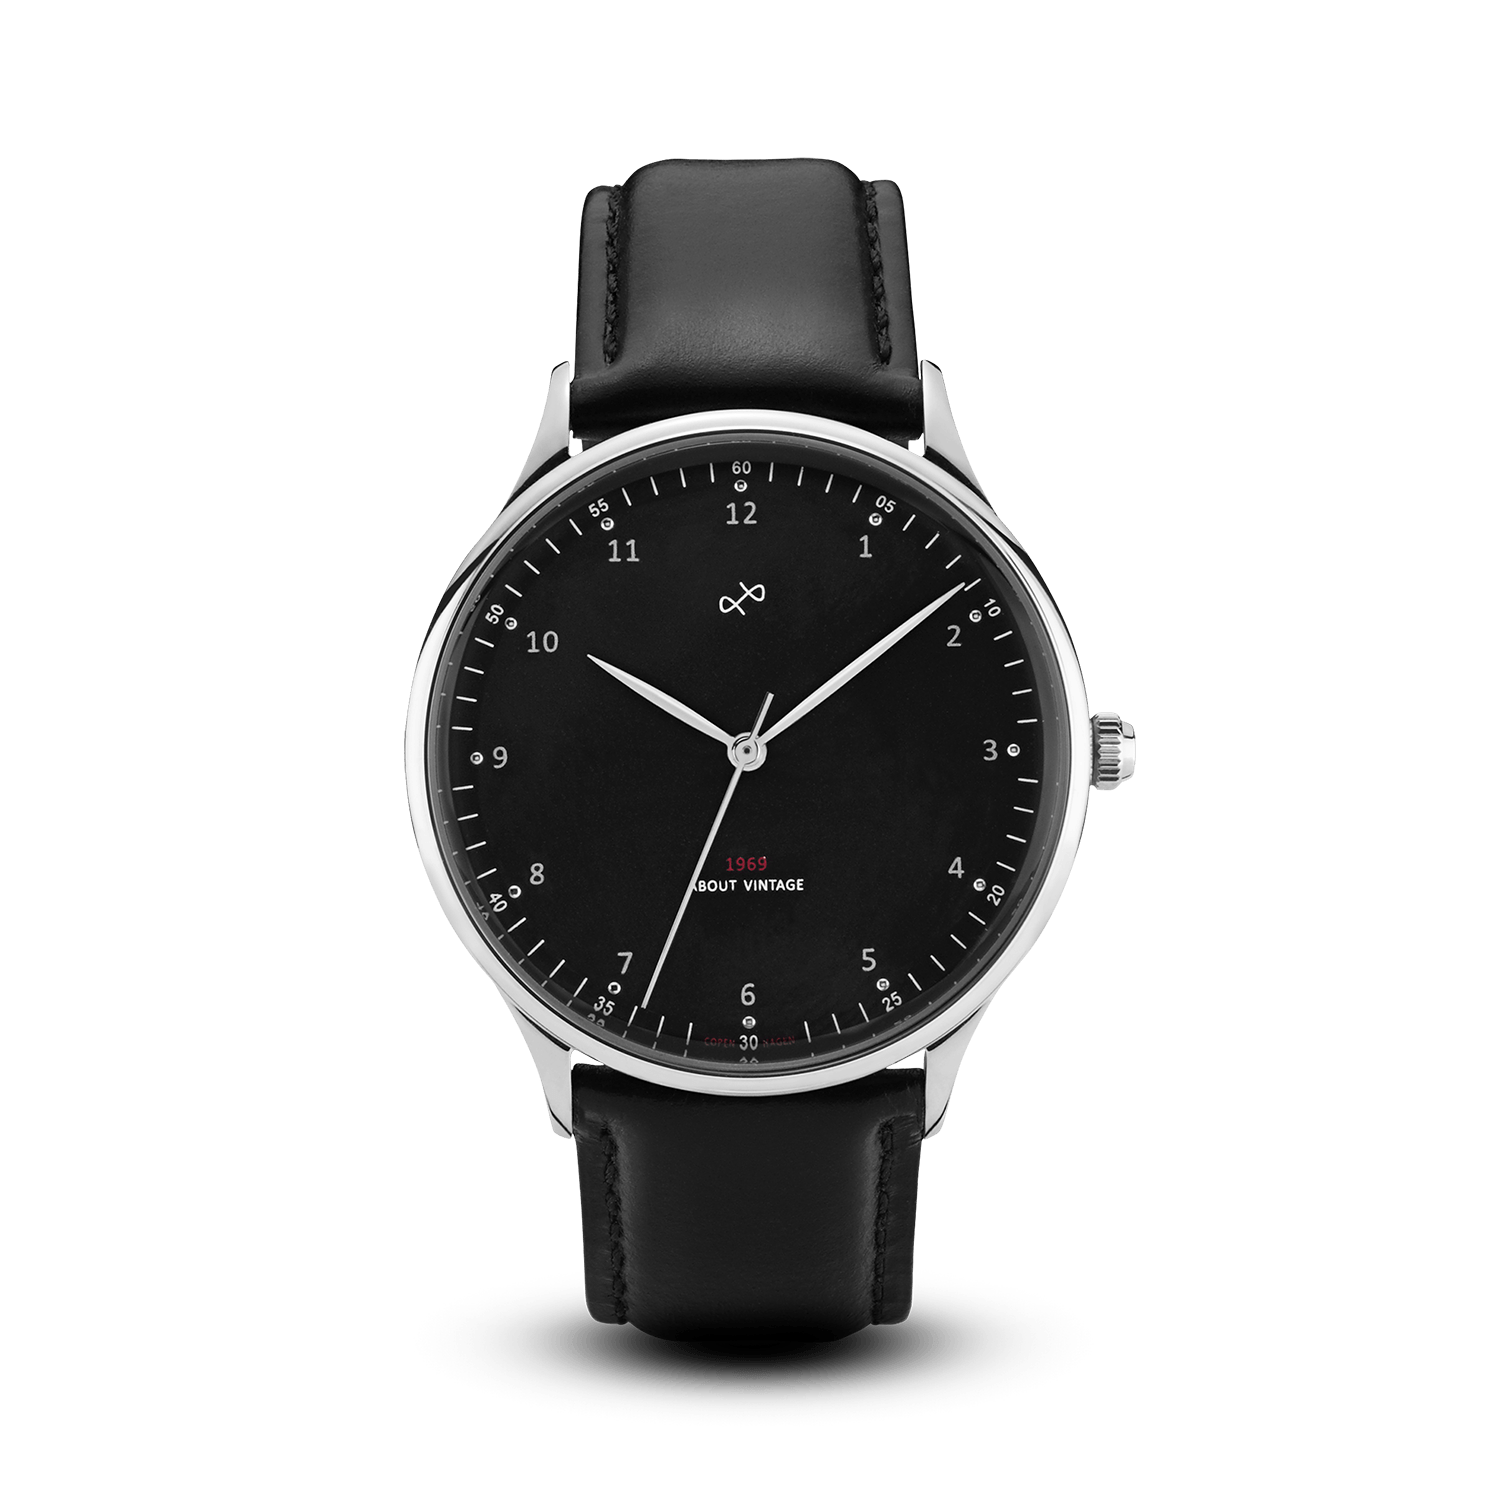 f336511bb0 About Vintage | Classic watches designed in Denmark – About Vintage ...